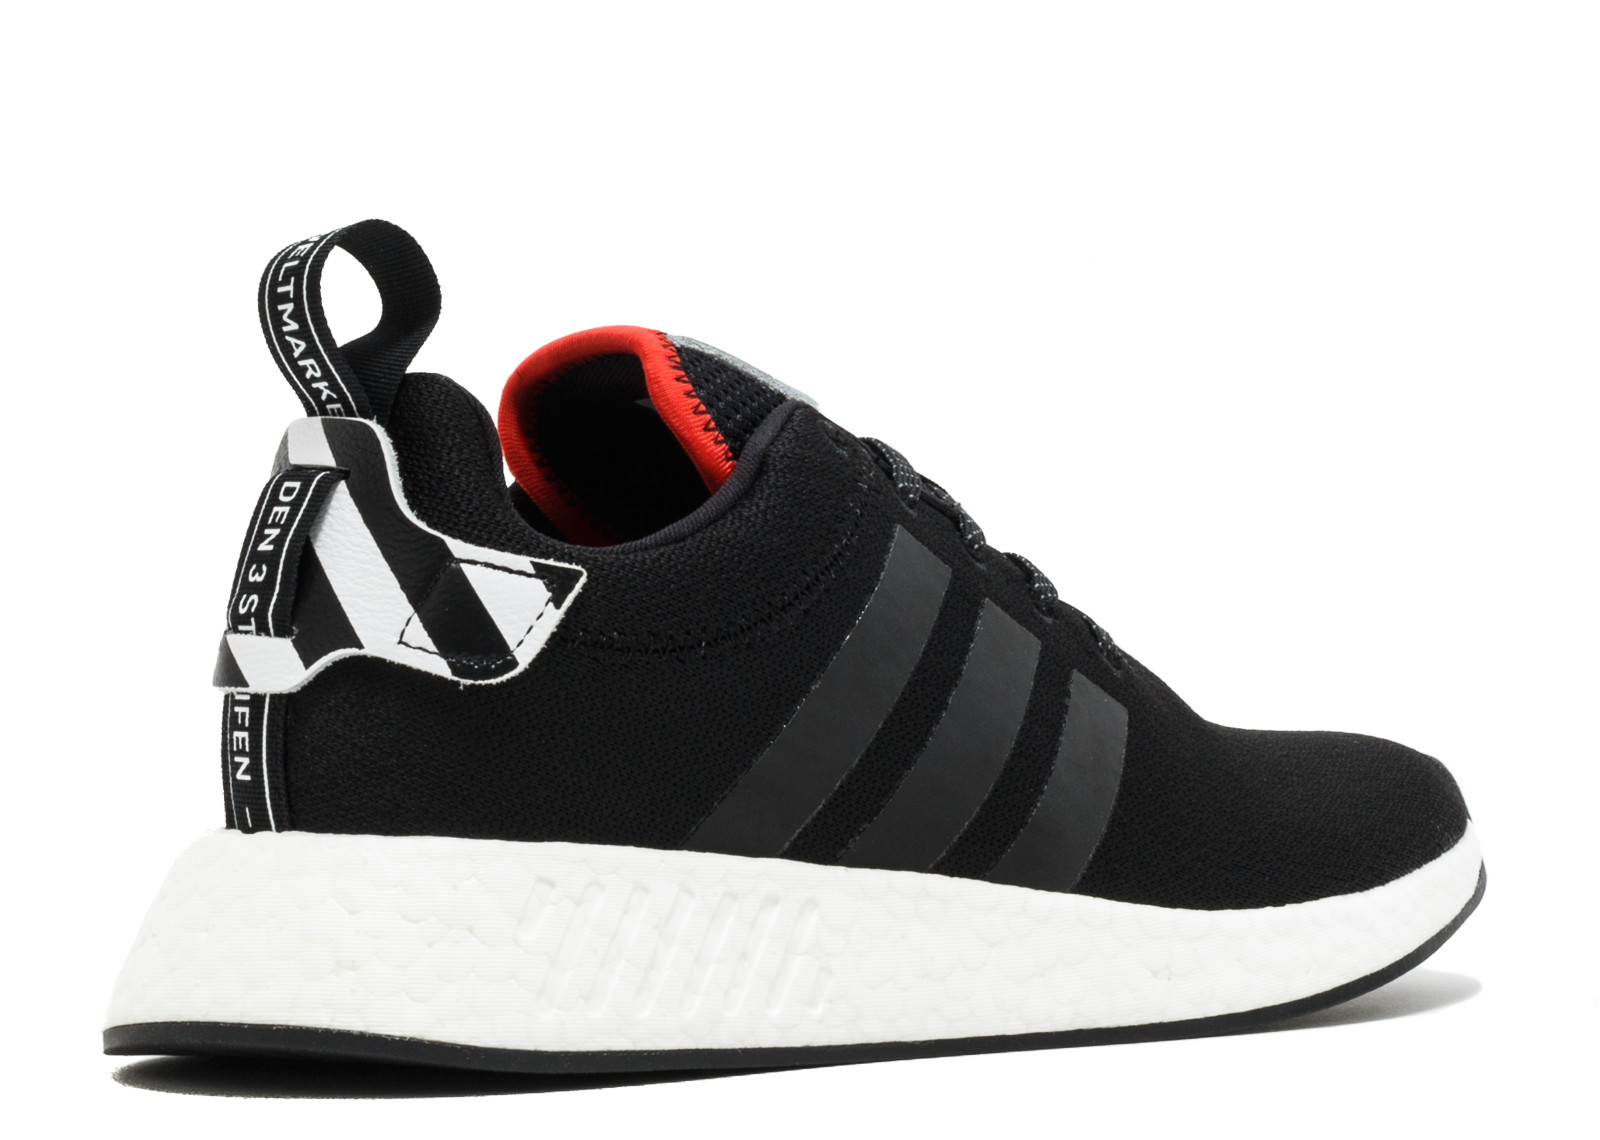 separation shoes d5374 38328 adidas NMD R2 Tokyo - 3